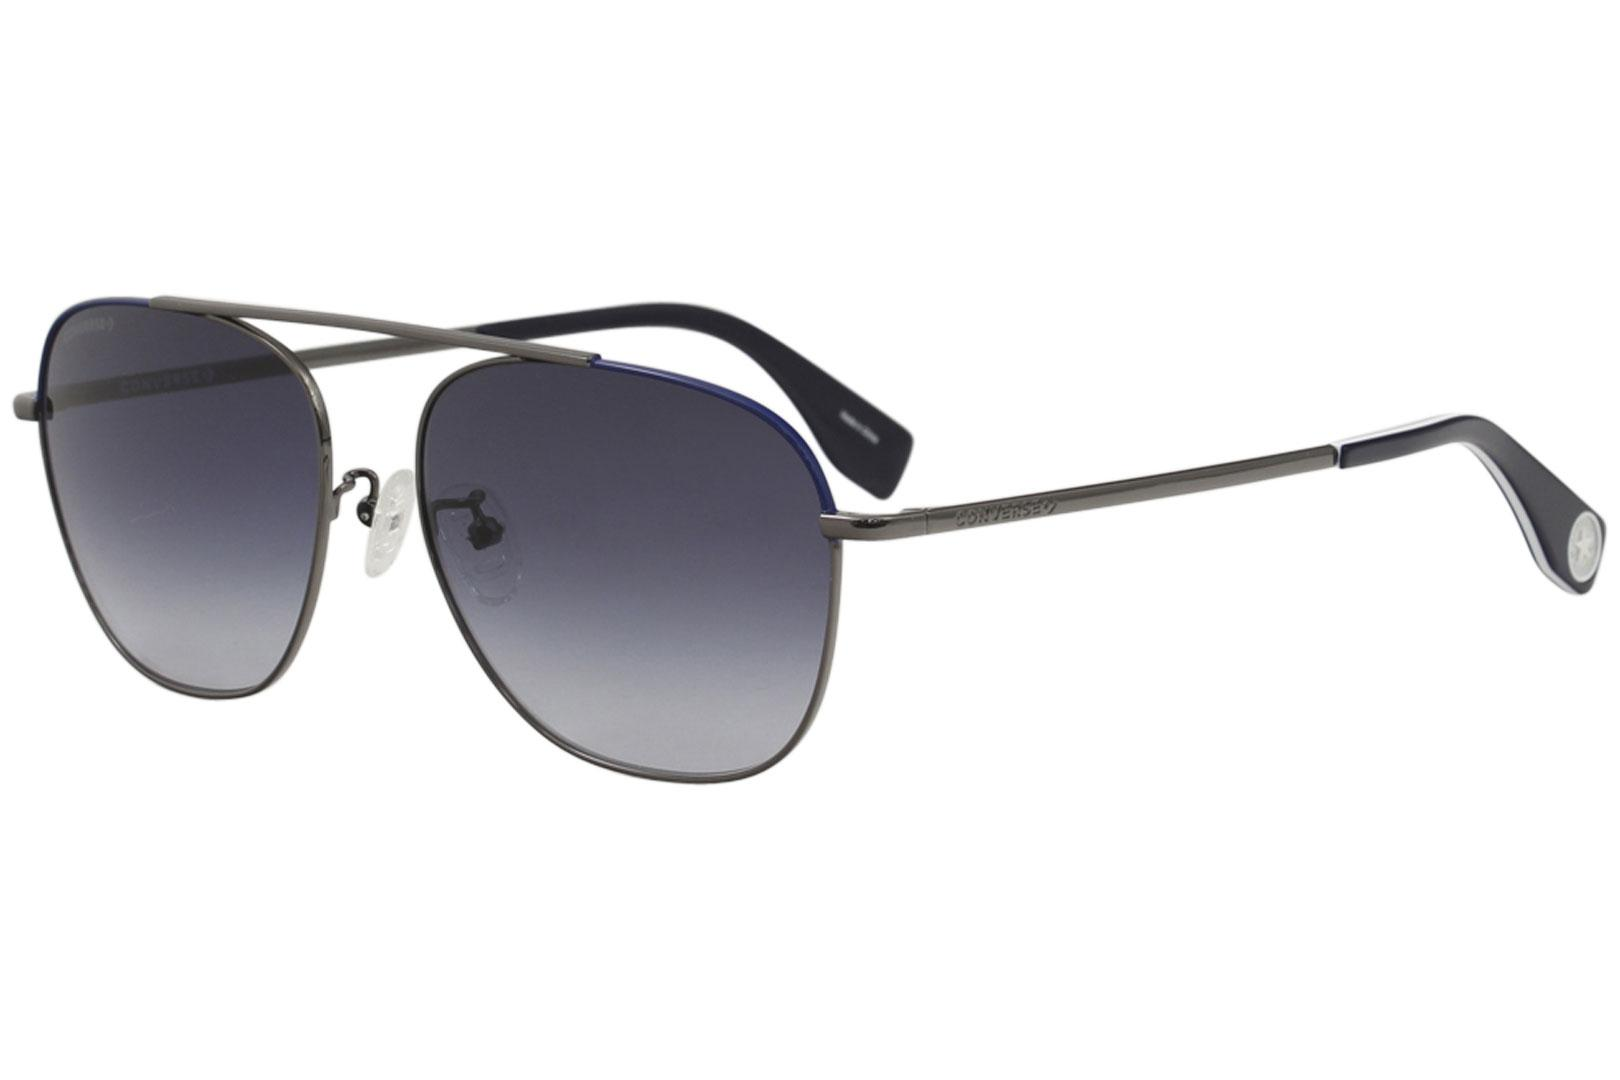 299bb327796 ... Fashion Pilot Sunglasses by Converse. Touch to zoom